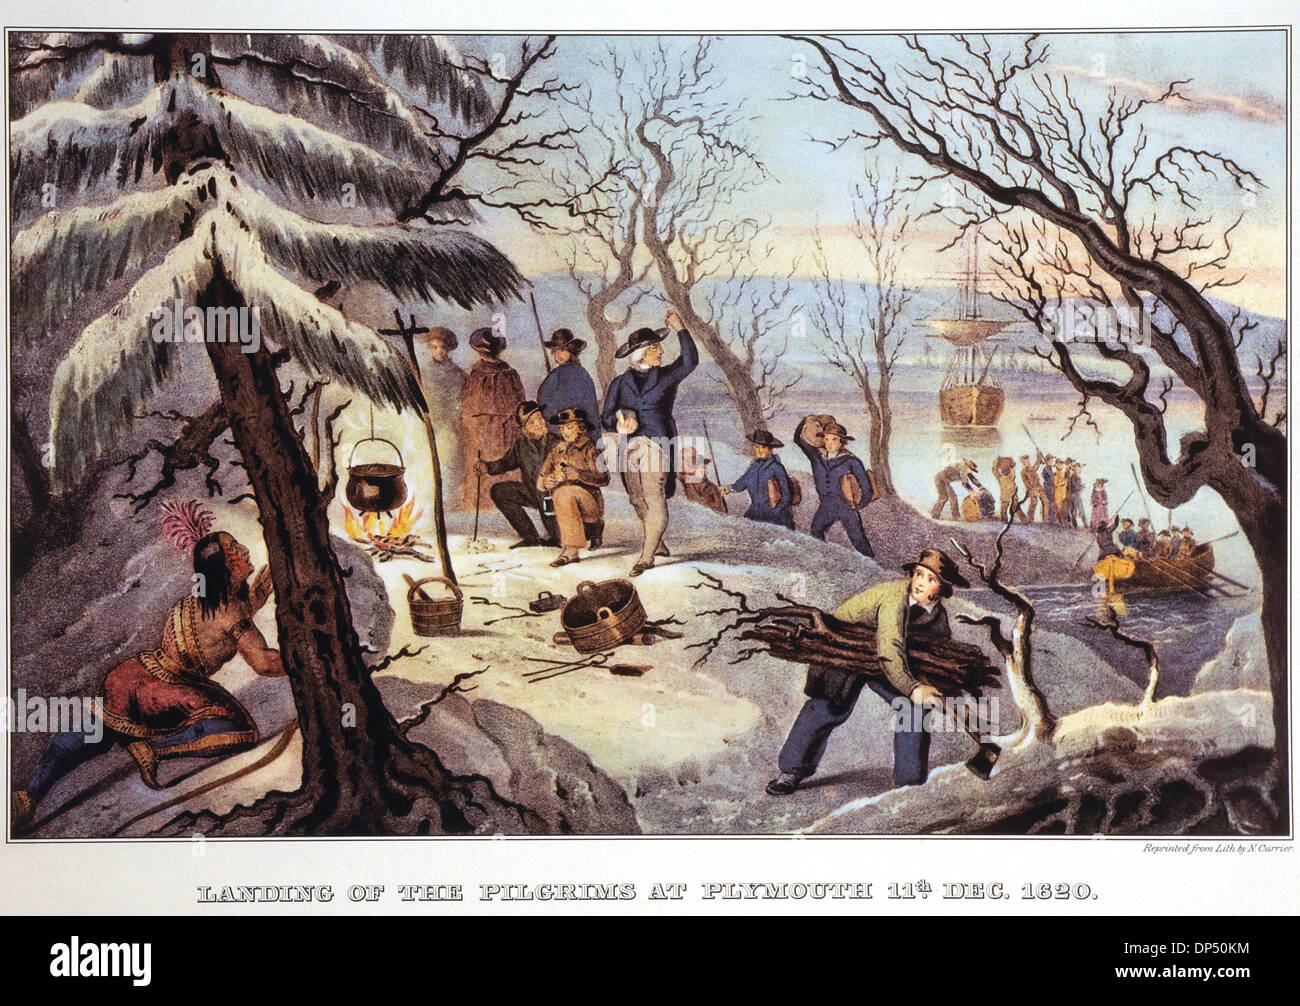 Landing Of The Pilgrims At Plymouth Rock 11th December